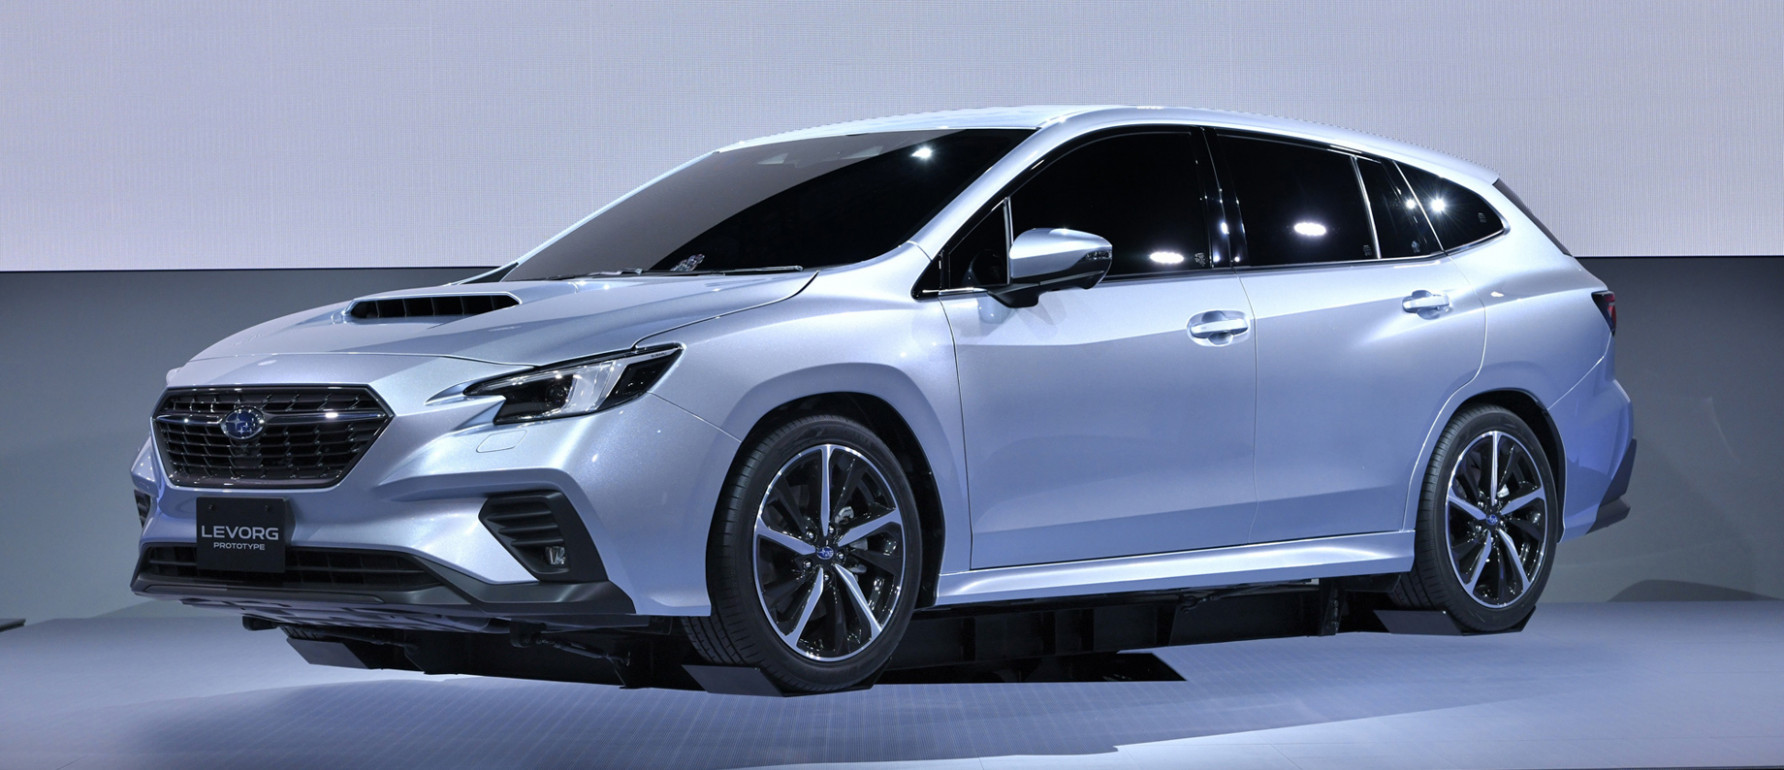 Redesign and Concept 2022 Subaru Legacy Turbo